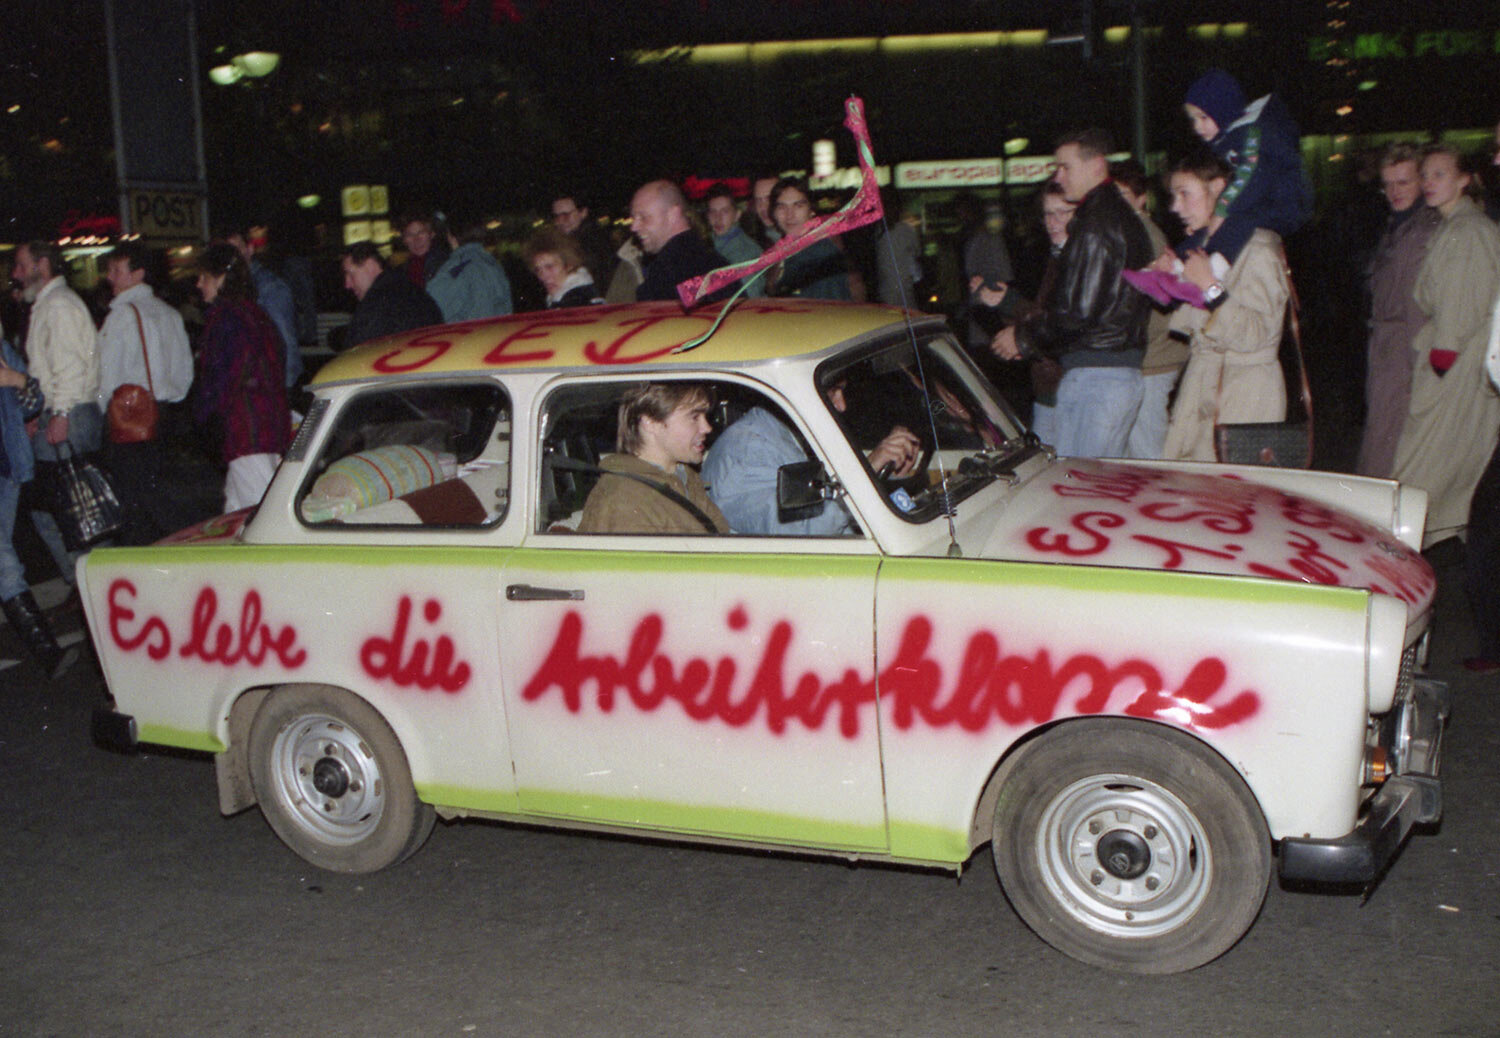 """A Trabant car, made in East Germany, with a graffiti quote, """"Shall the laboring classes live on"""" is pictured driving in West Berlin, West Germany, November 11, 1989, two days after the boarder between the two Germanys was abolished. (AP Photo)"""